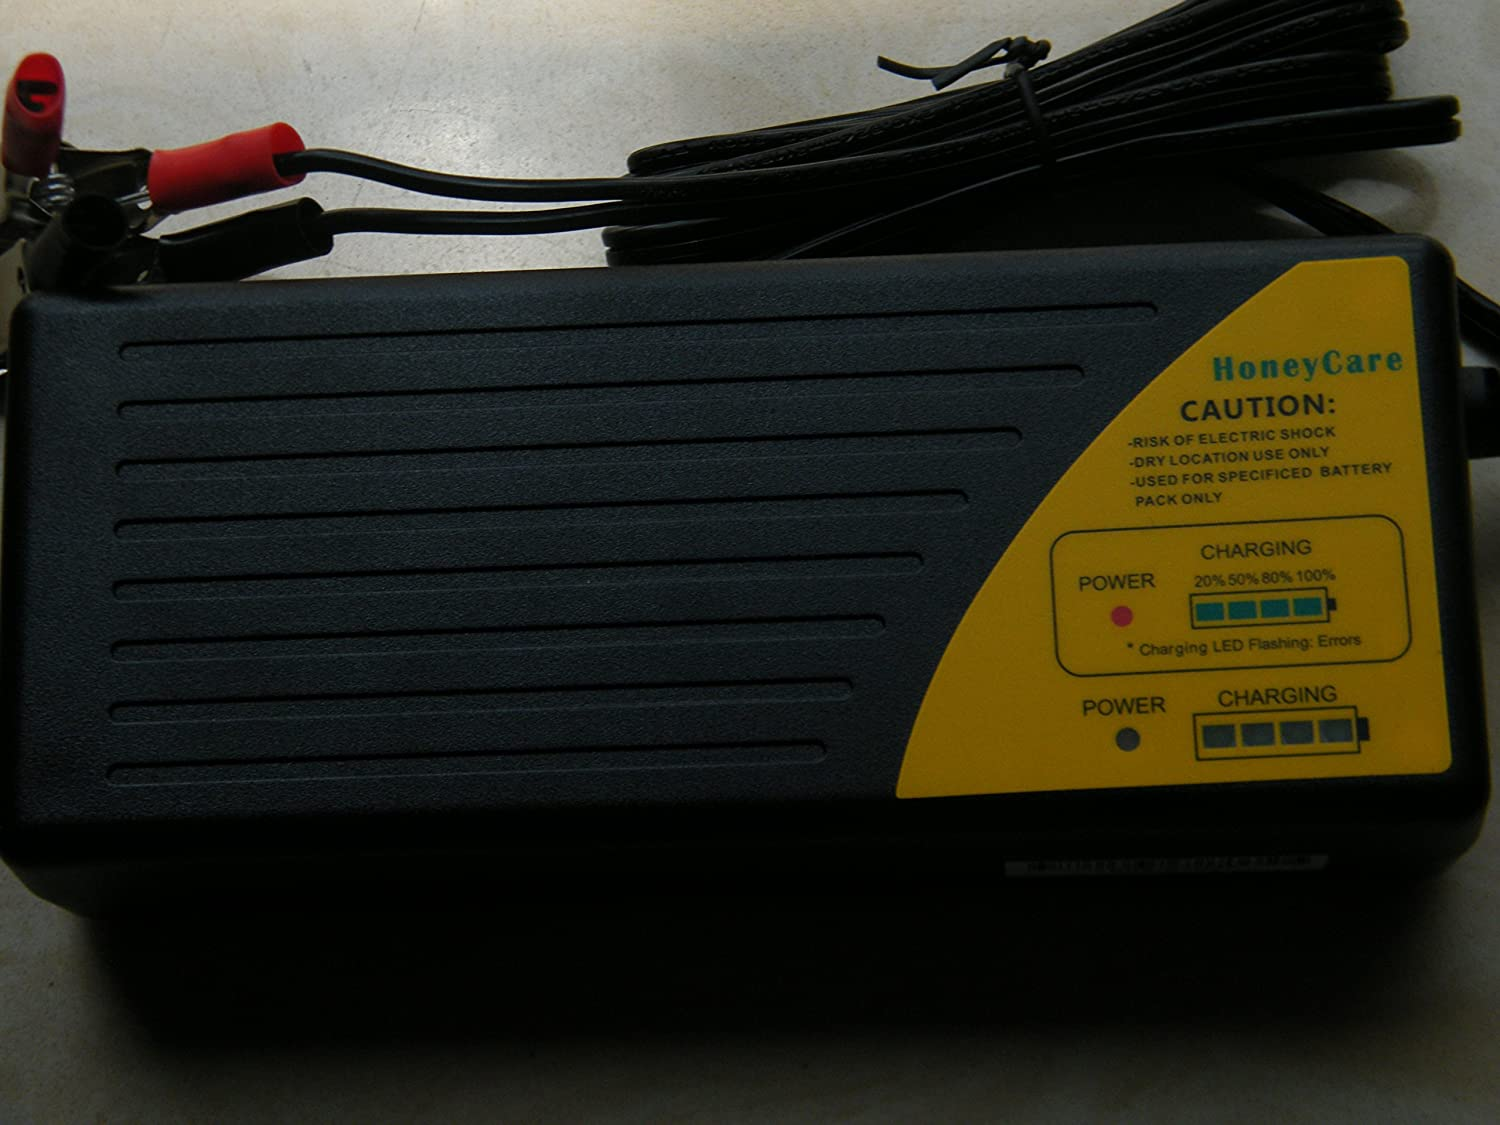 12V SLA Sealed Lead Acid Battery Charger,SLA AGM GEL VRLA Battery Charger with Fuel Gauge,MCU Control,With Recovery Function Charger For Scooter 12V Lead Acid Charger